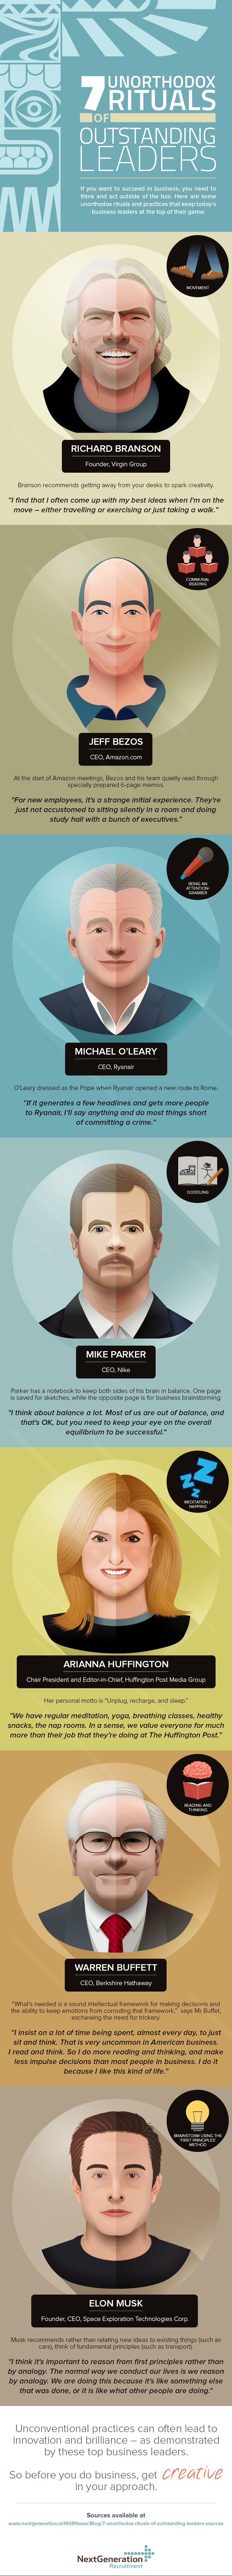 The Offbeat Habits of 7 Famous Leaders (Infographic)